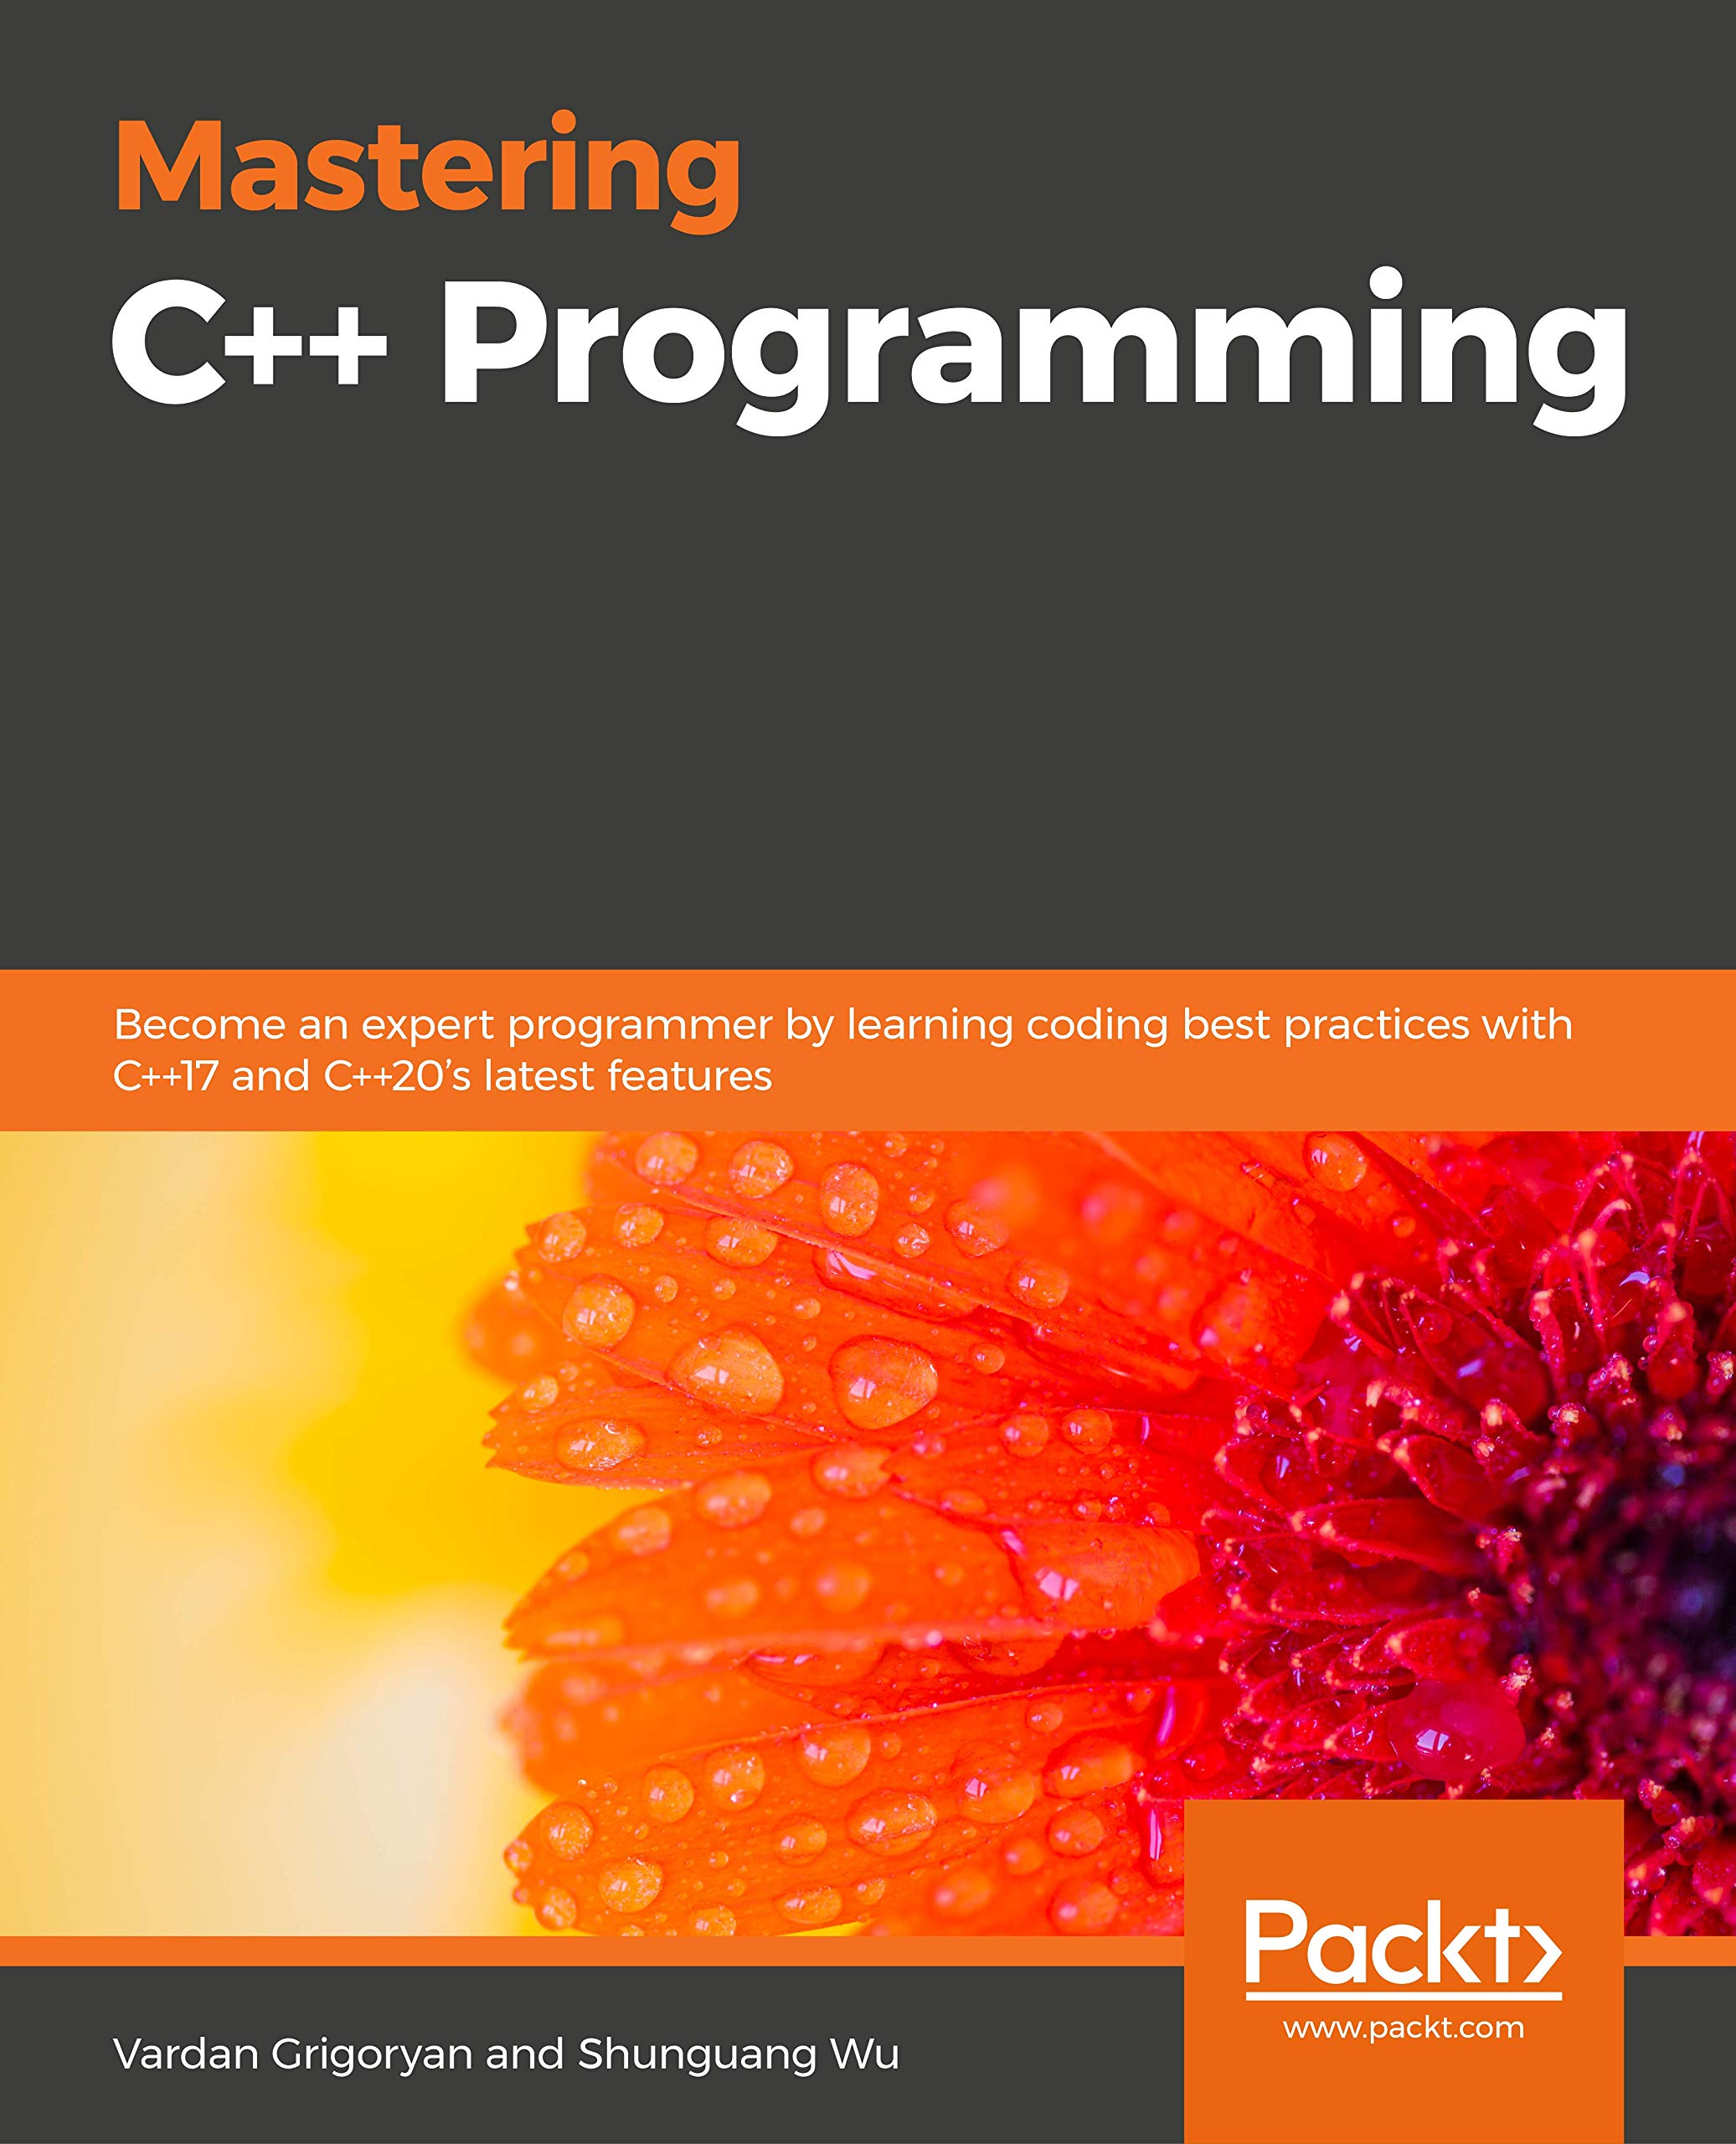 Mastering C++ Programming: Become an expert programmer by learning coding best practices with C++17 and C++20's latest